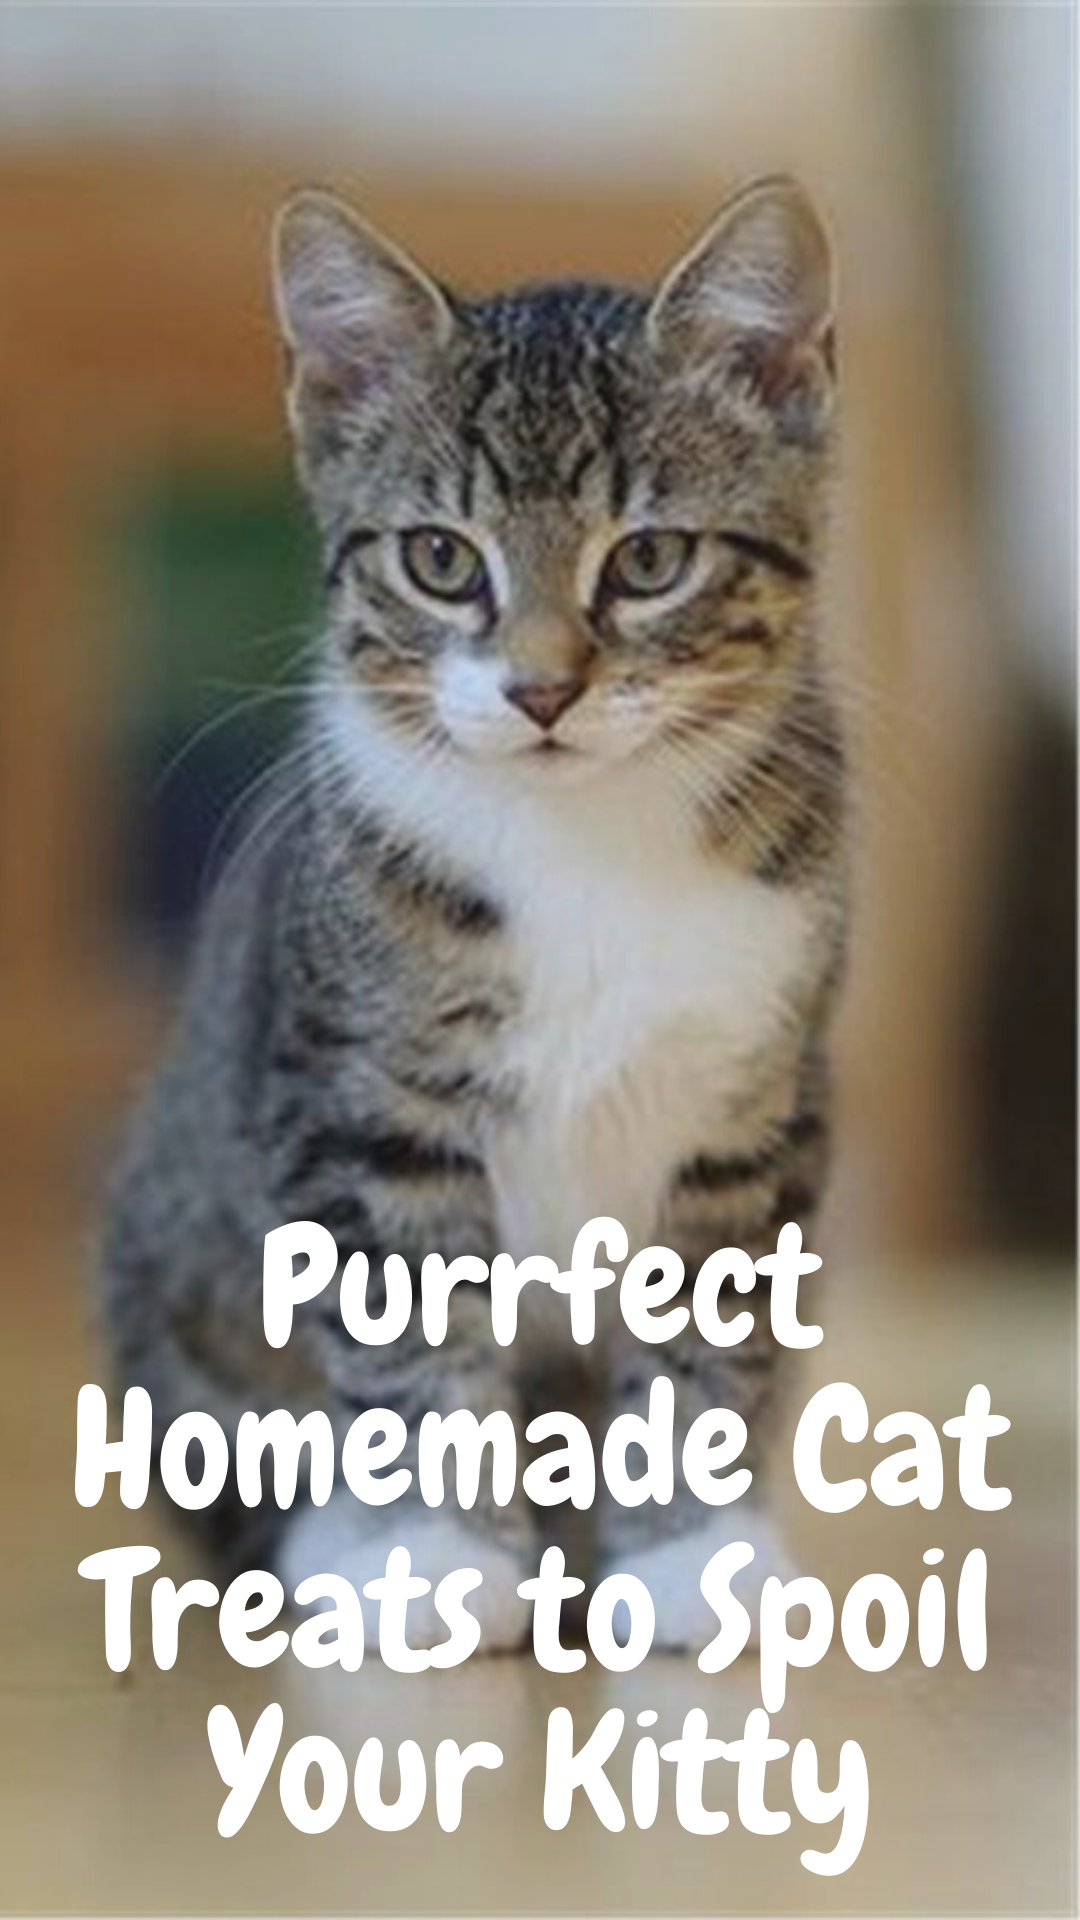 9 Purrfect Homemade Treats For Your Cat Cats Pretty Cats Cat